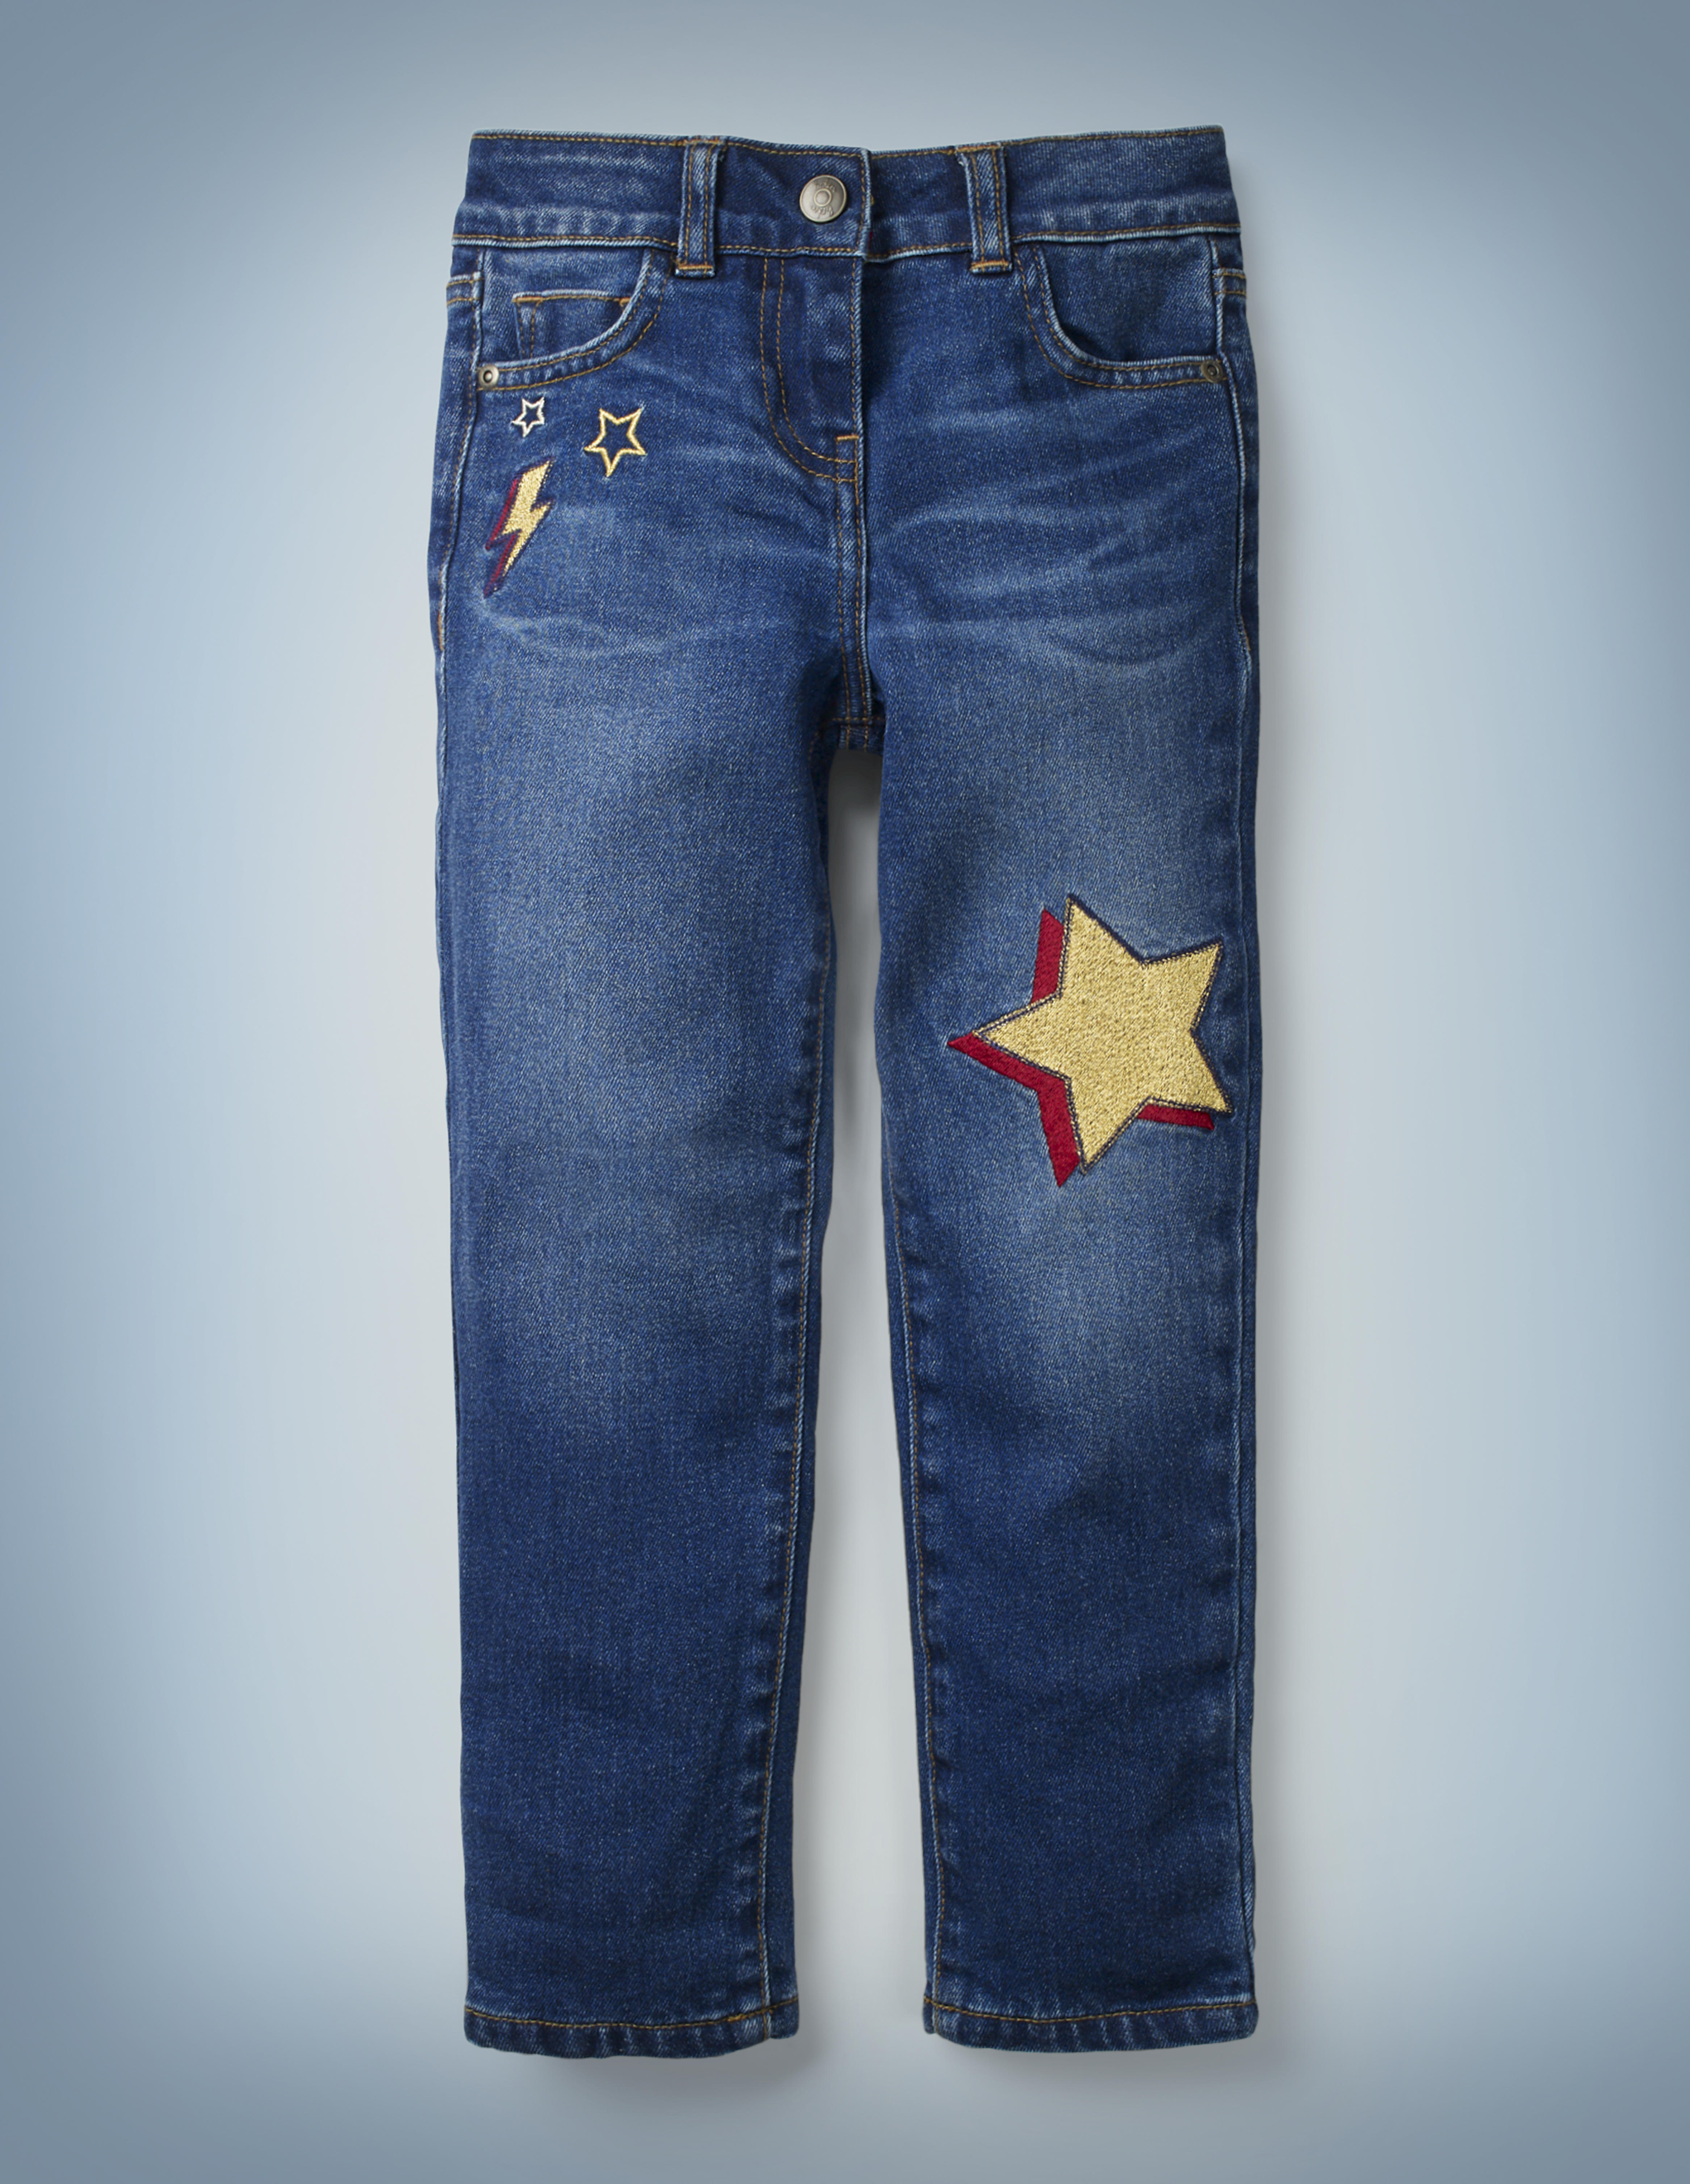 The Mini Boden Lightning Bolt Jeans include a fun design of stars and a red-and-gold lightning bolt near the right front pocket and a red-and-gold star in the left knee area. They retail for £28.